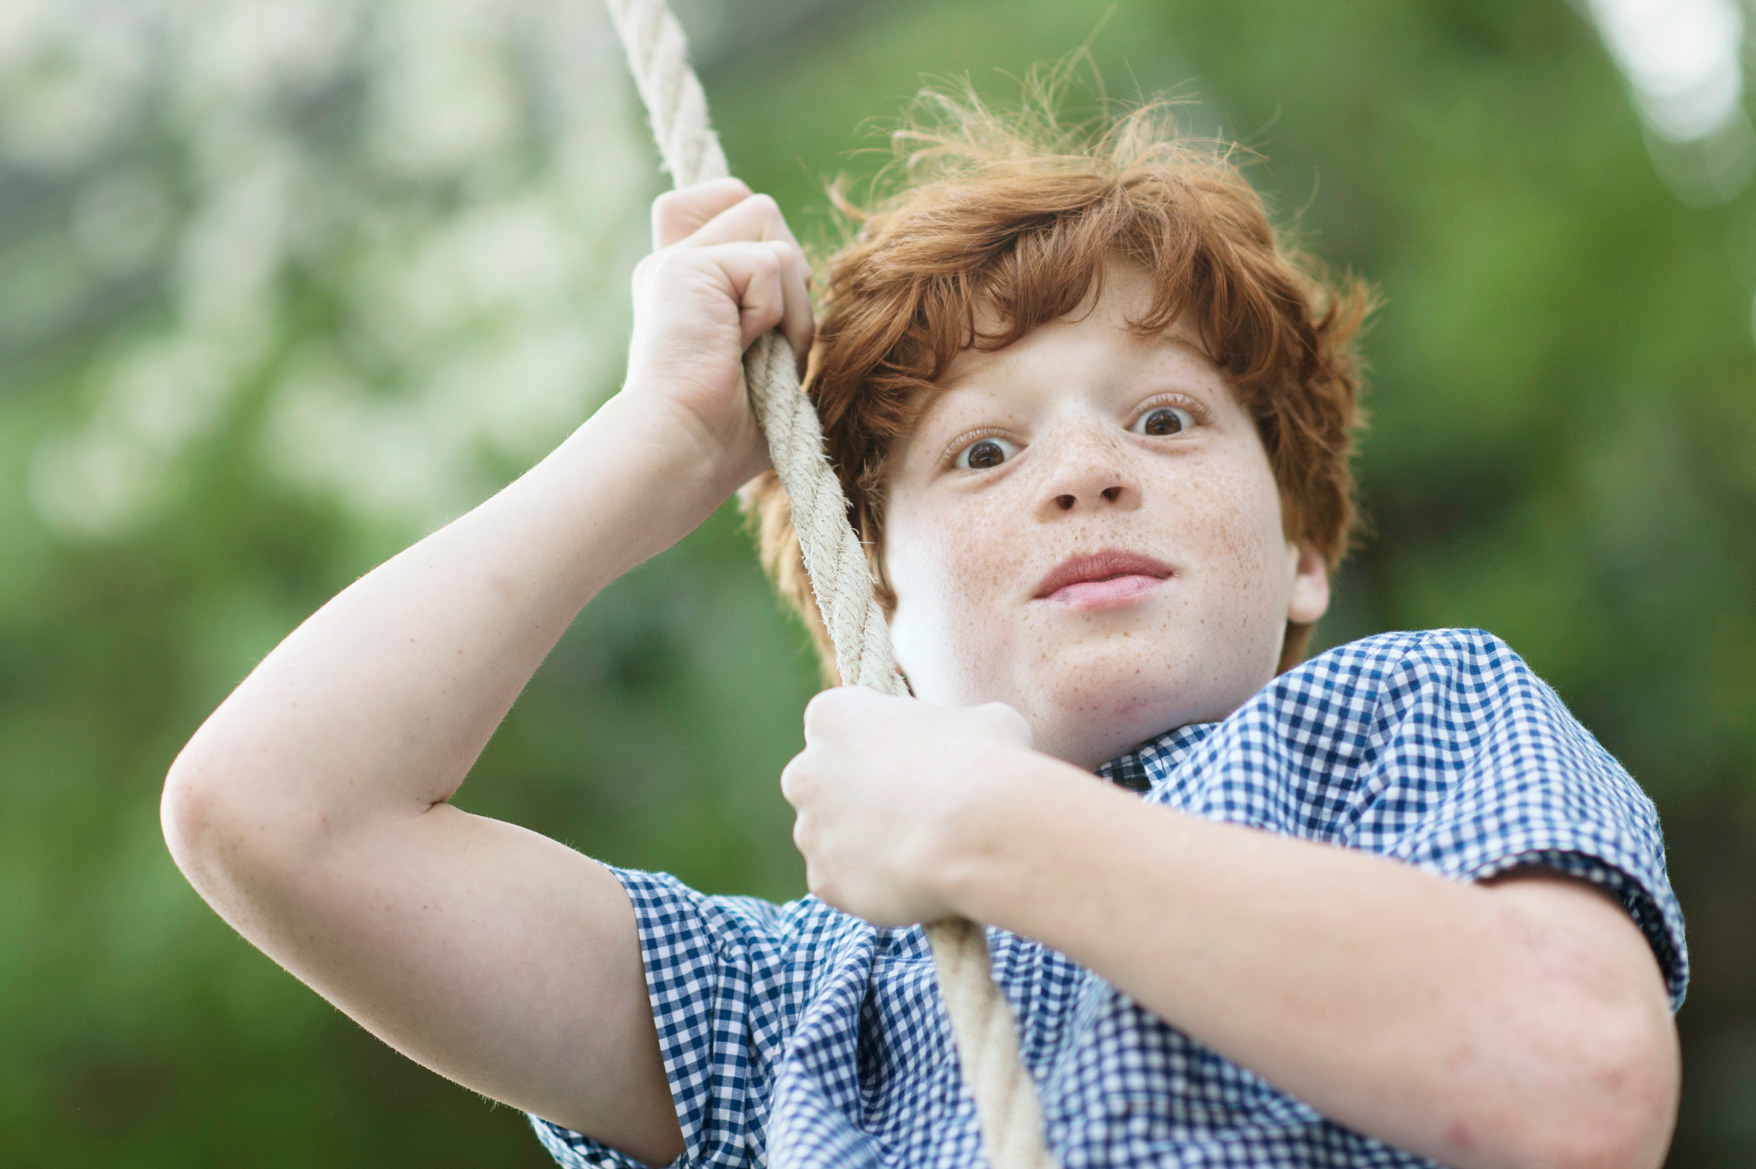 red haired boy on swing